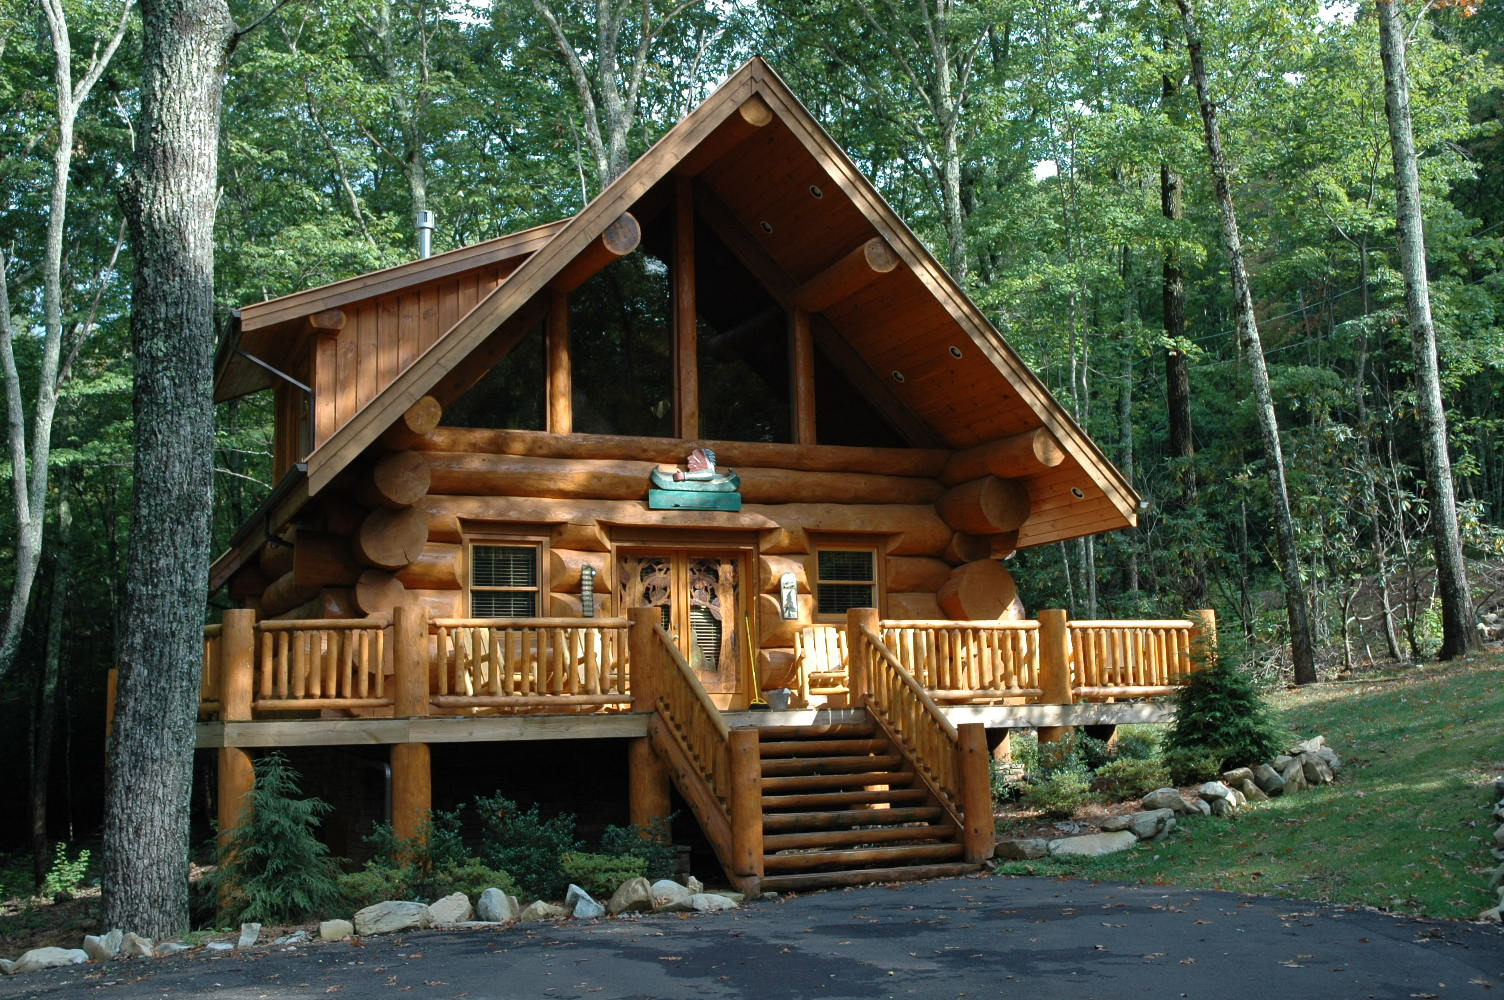 arkansas accesskeyid cabins glen cabin disposition alloworigin rentals rio